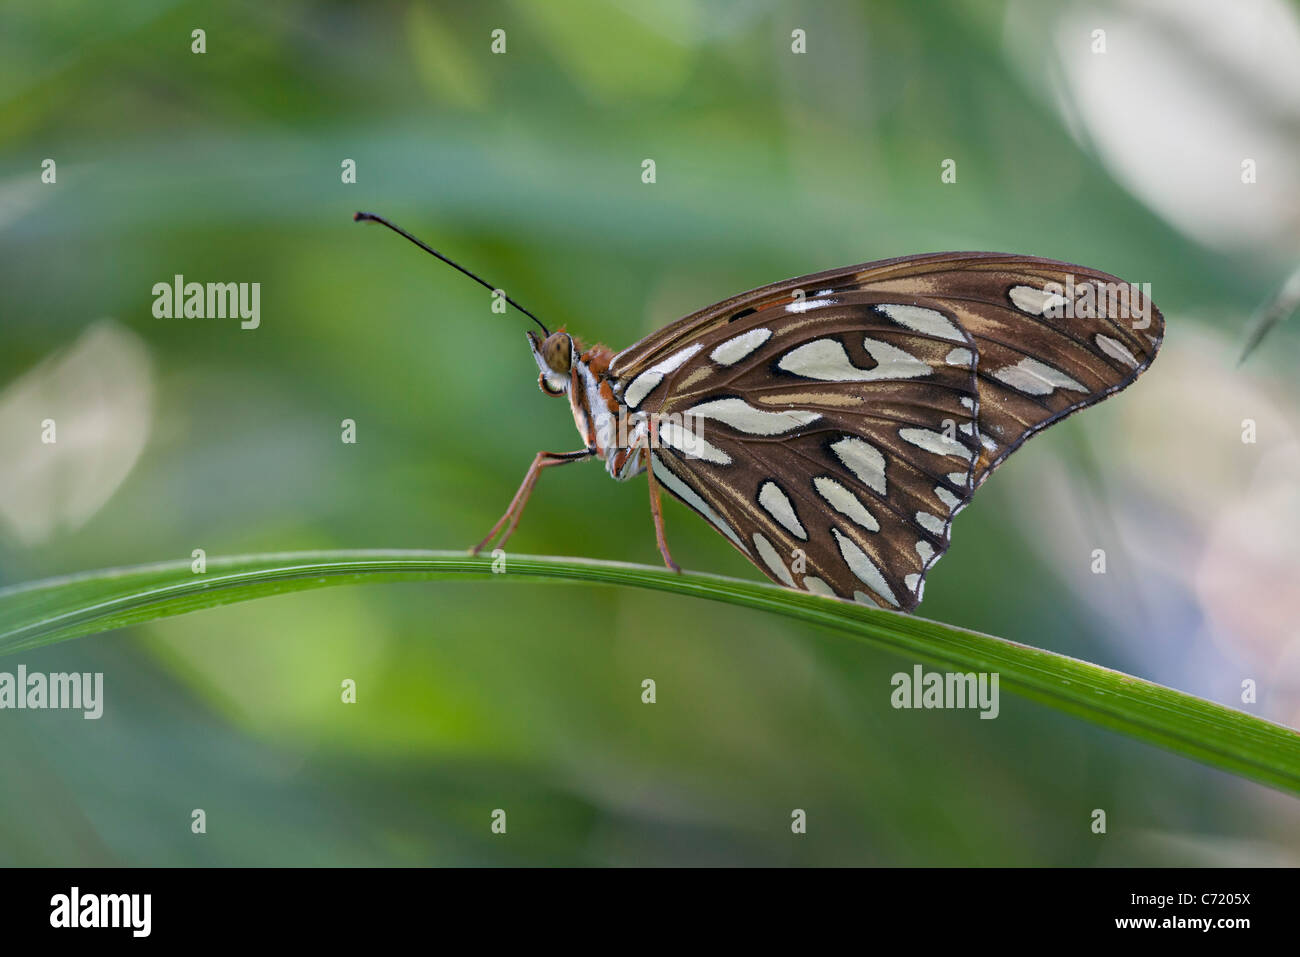 Gulf fritillary butterfly on blade of leaf - Stock Image